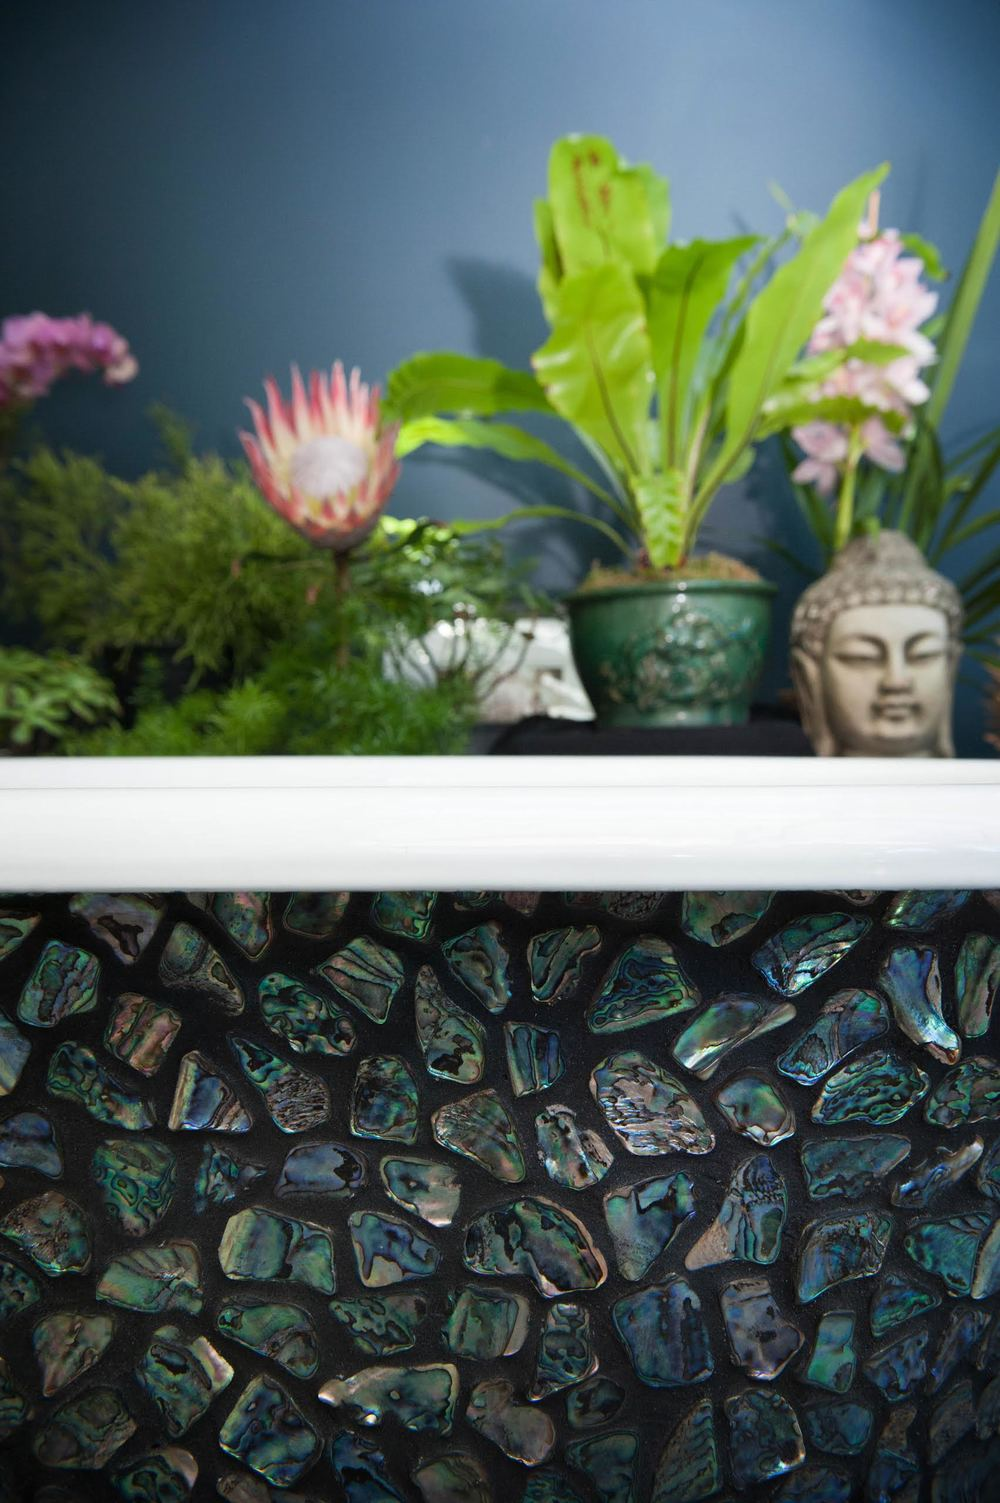 Paua shell mosaic clawfoot tub detail